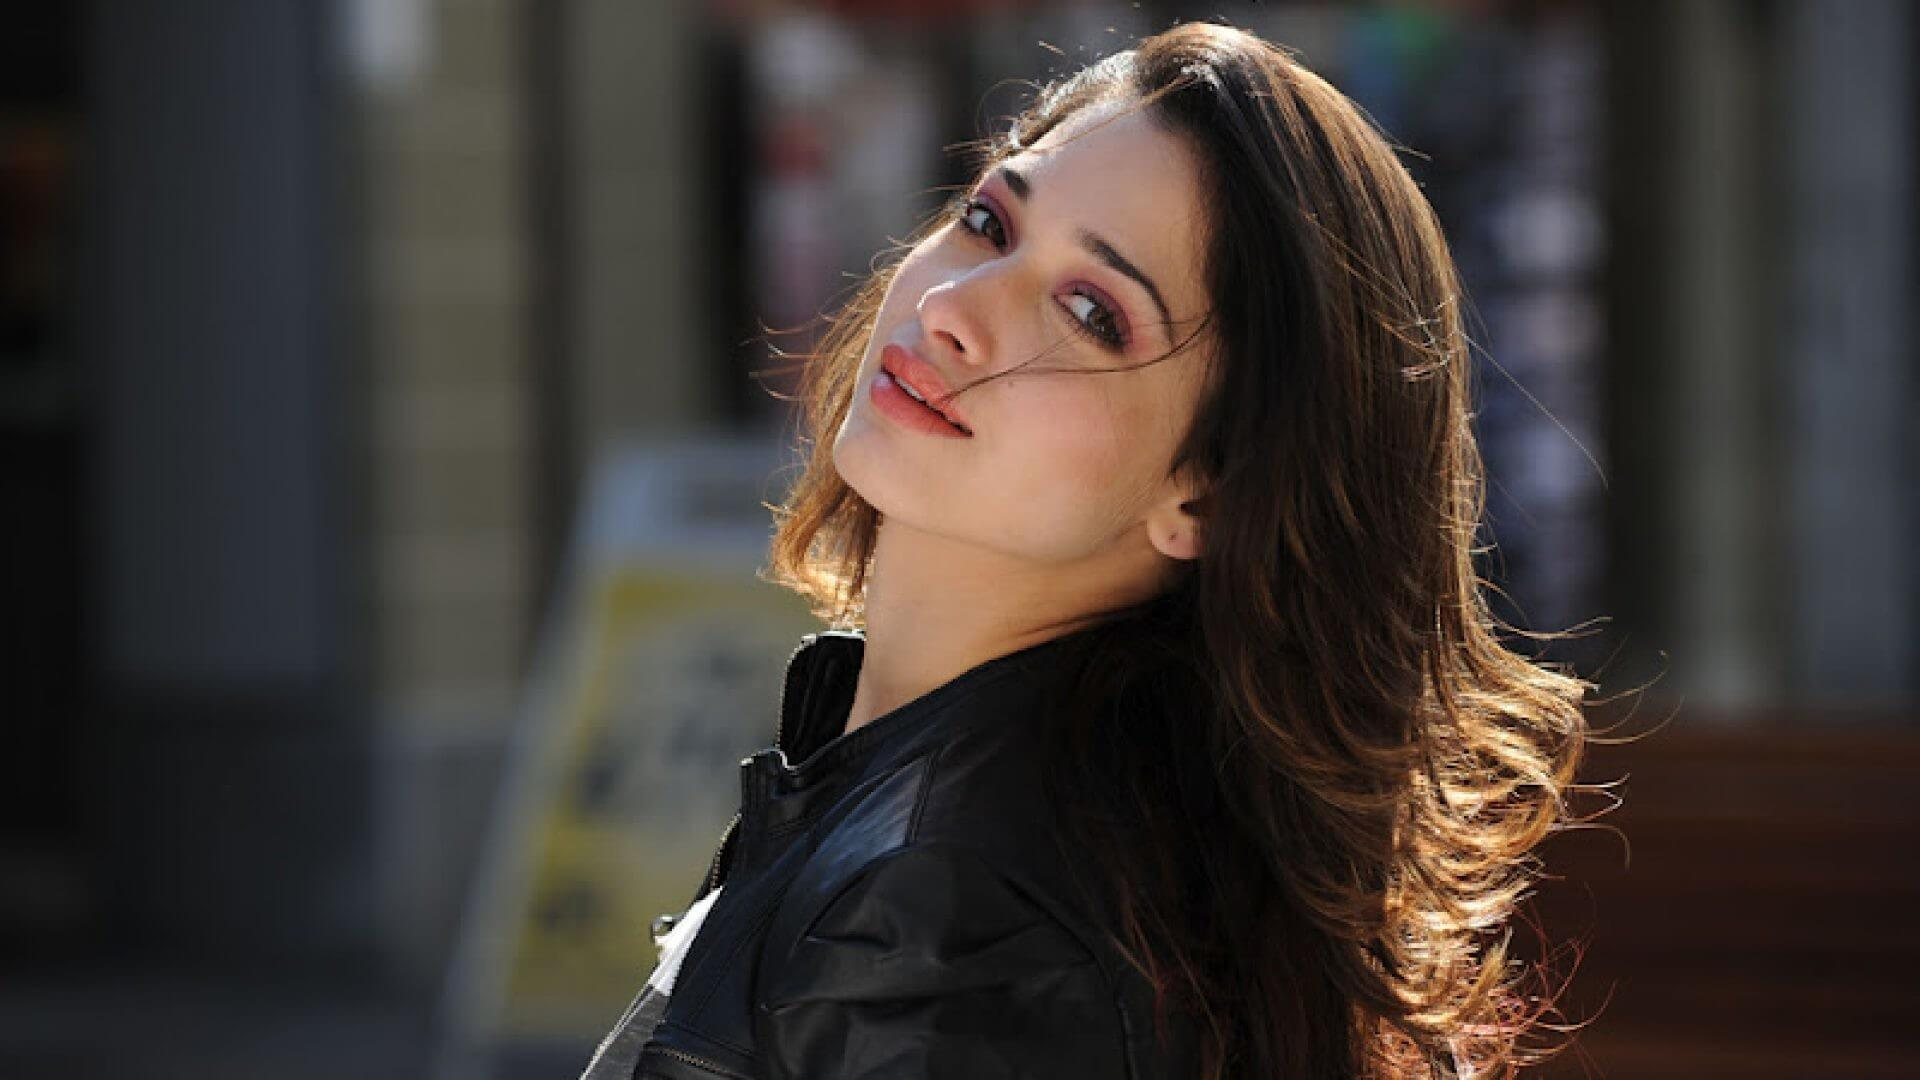 Tamannaah Bhatia Photos(images), Height, Biography, Movies, Date Of Birth, House, Details, Marriage, Boyfriend, Net Worth, Education, Instagram, Facebook, Twitter, Wiki, Imdb, Youtube (14)